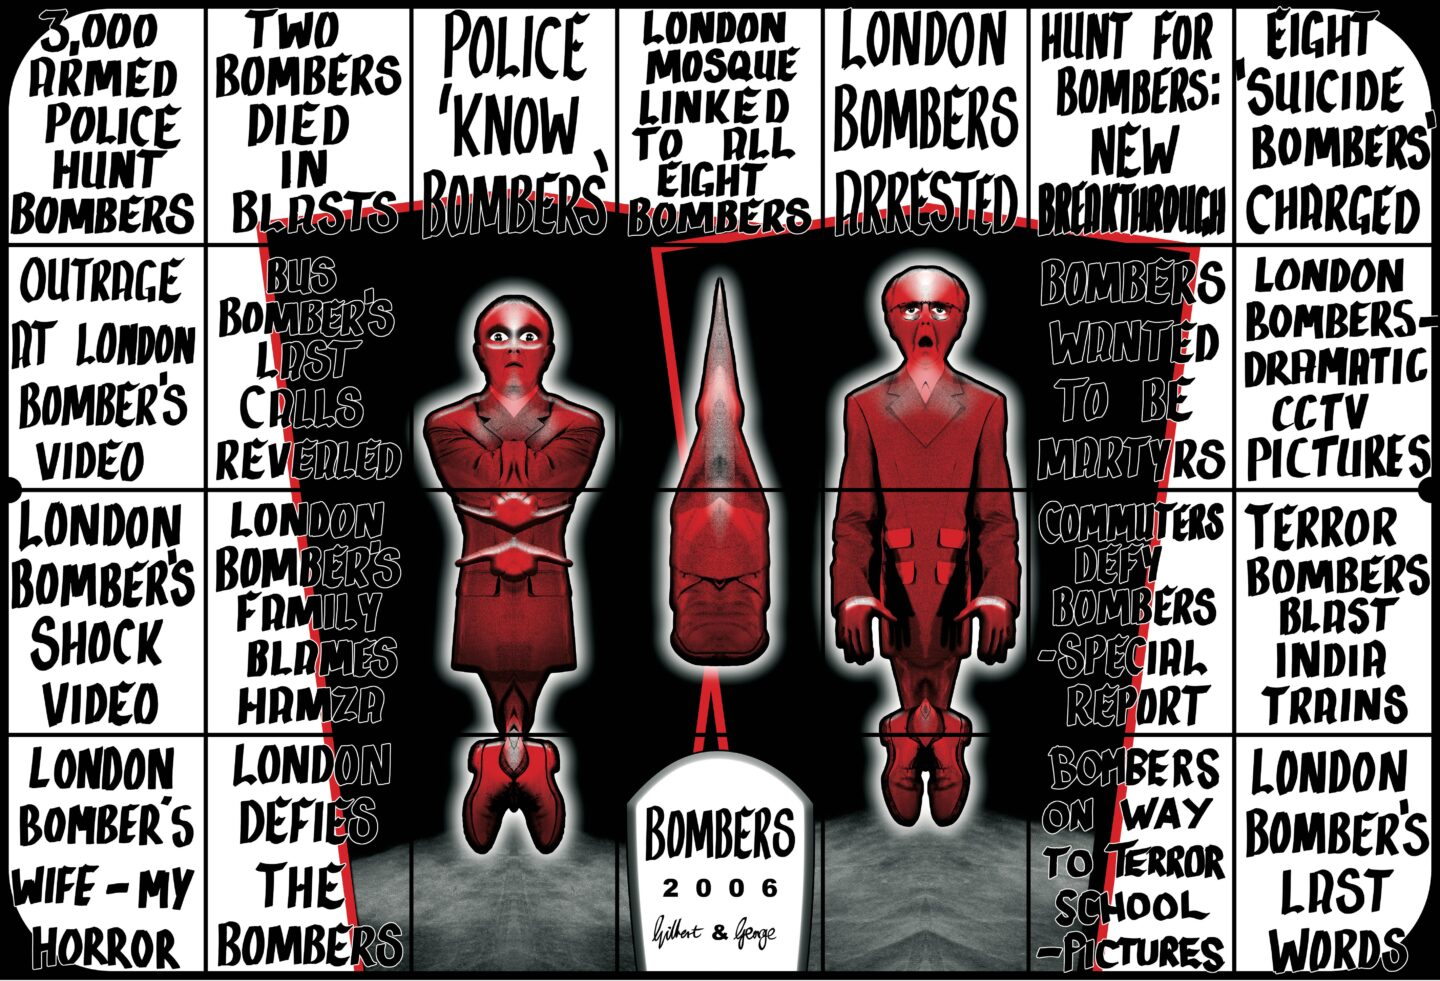 Exhibition View Gilbert & George «THE GREAT EXHIBITION, 1971–2016; view on BOMBERS, 2006» at Kunsthalle Zürich & Luma Westbau, Zurich, 2020 / © Gilbert & George / Courtesy: the artists, Kunsthalle Zürich & Luma Westbau